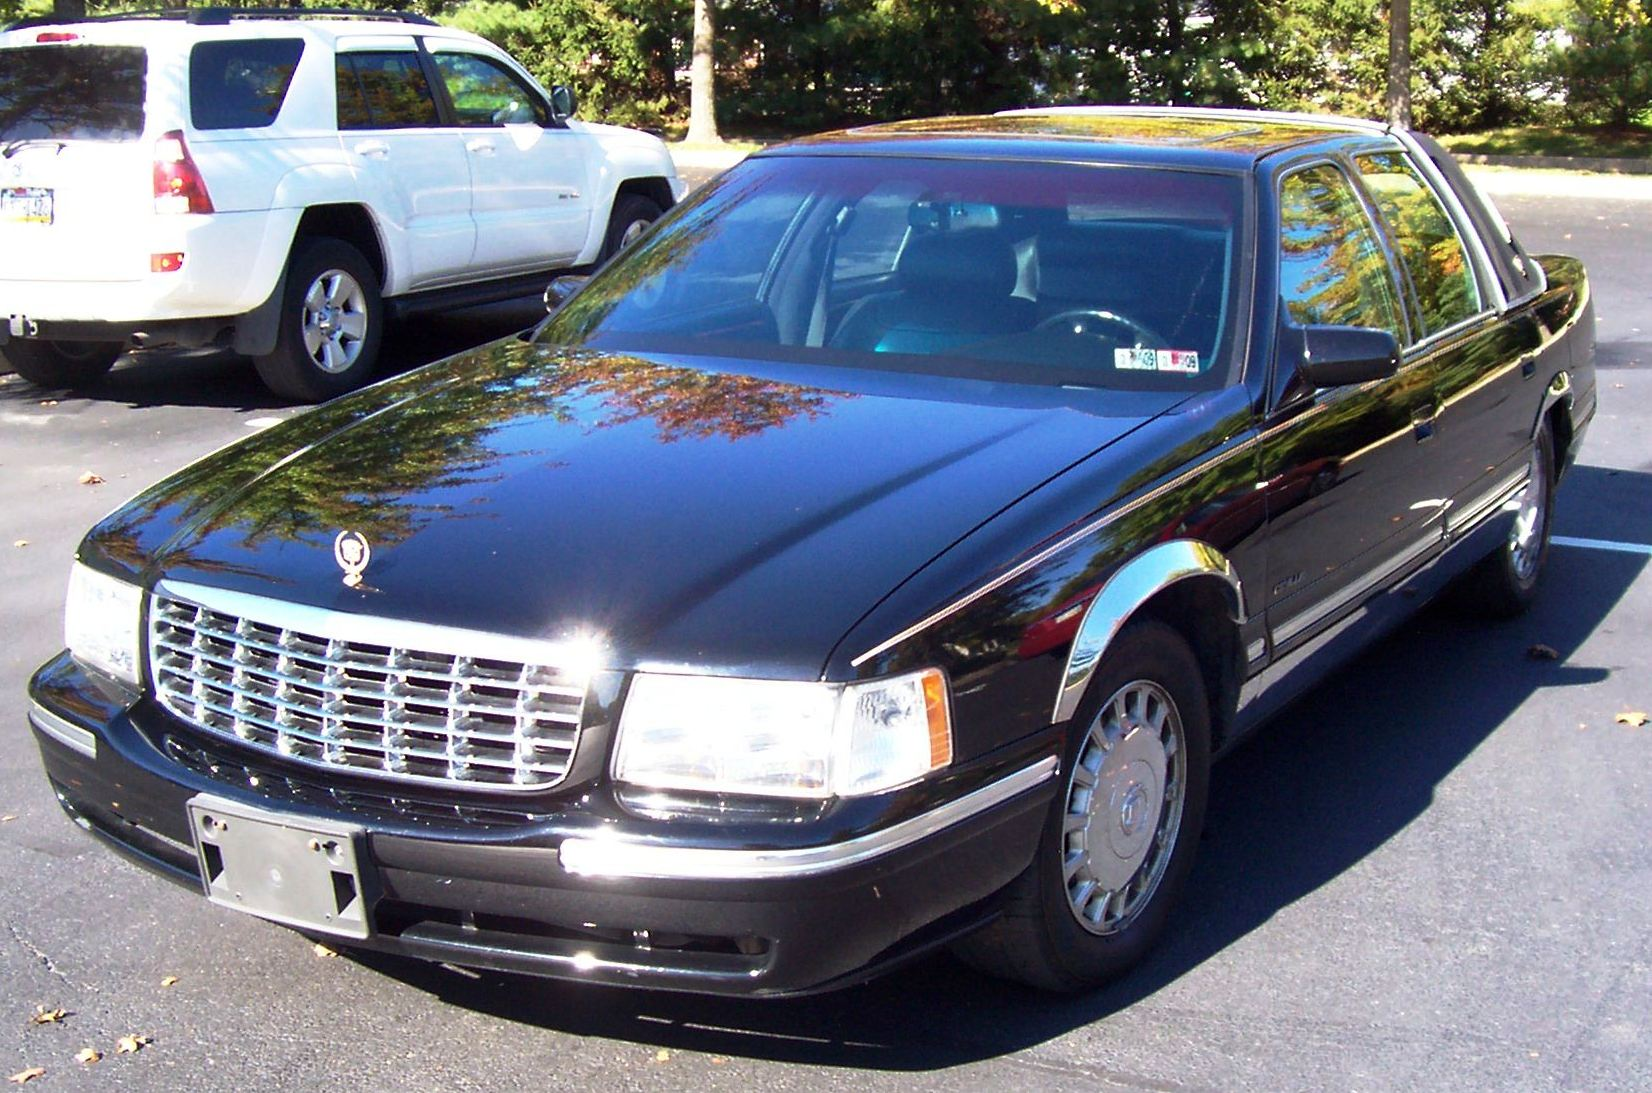 hight resolution of for sale by owner 1998 cadillac deville d elegance 4 door sedan 3 995 royersford pa 19468